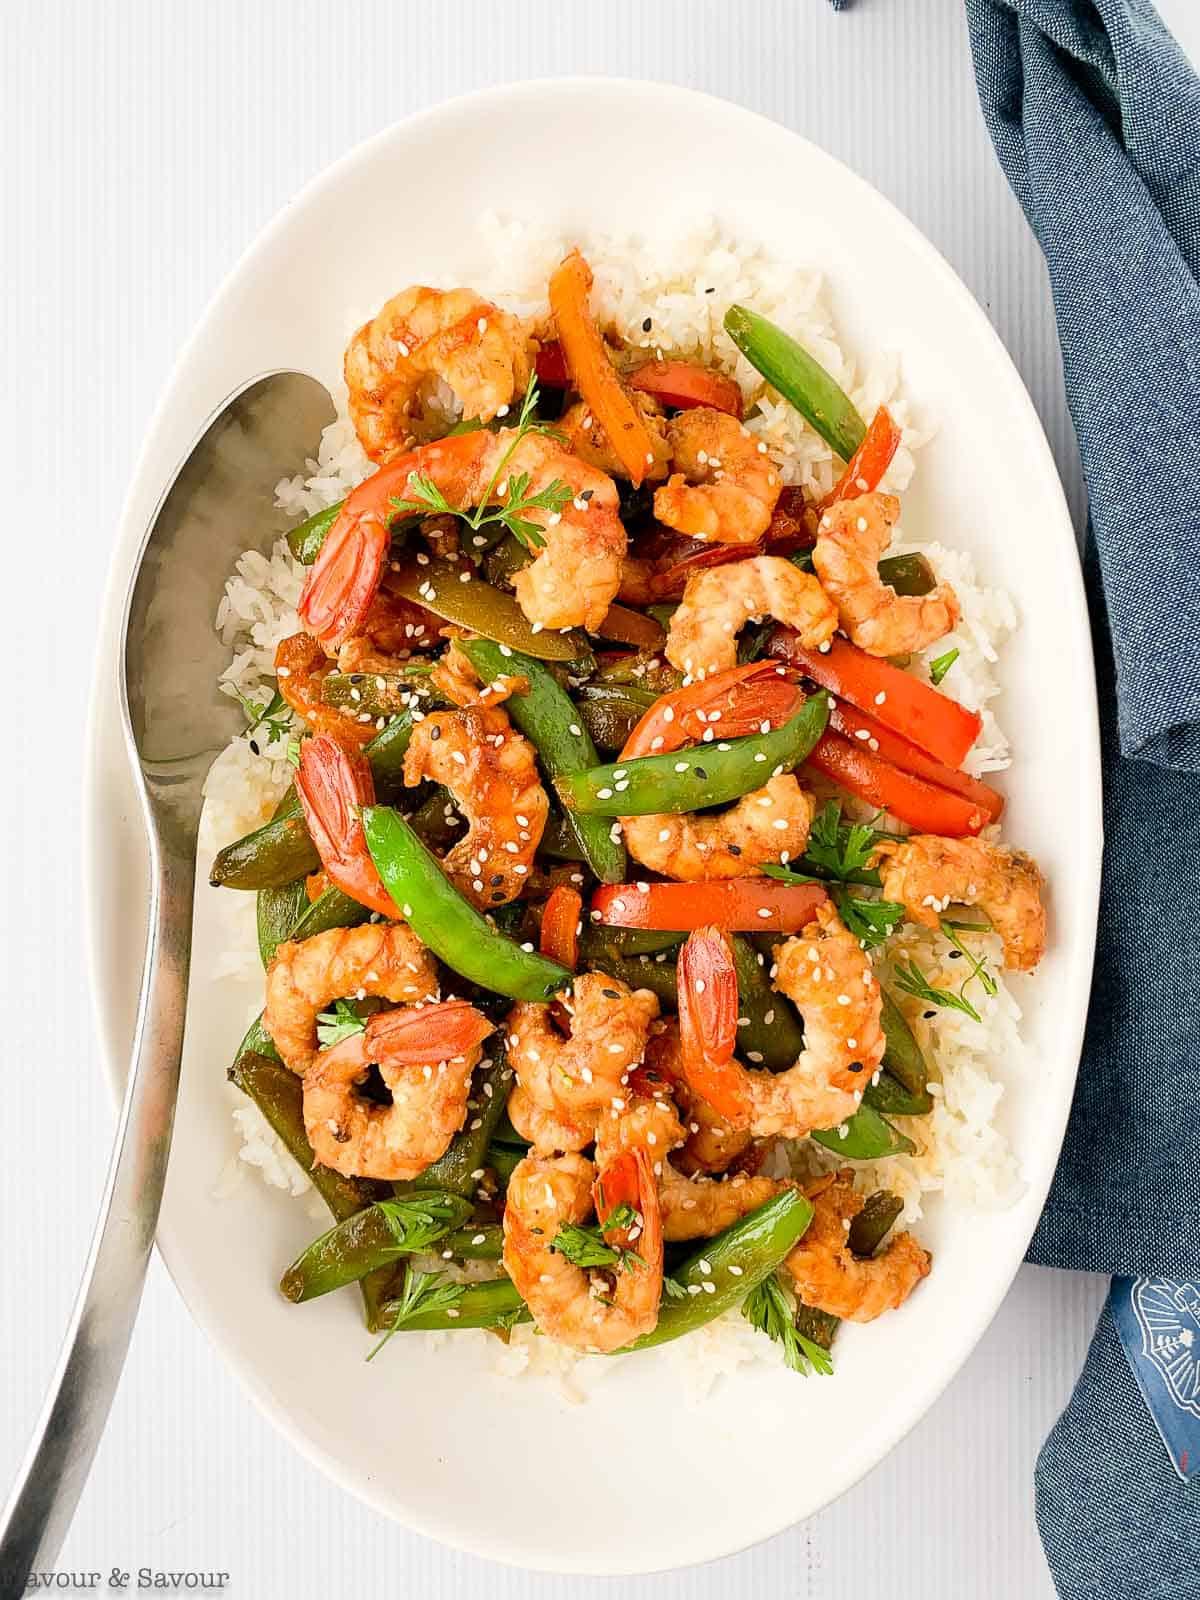 Overhead view of an oval bowl with Lemon Garlic Shrimp and Snow Pea Stir Fry